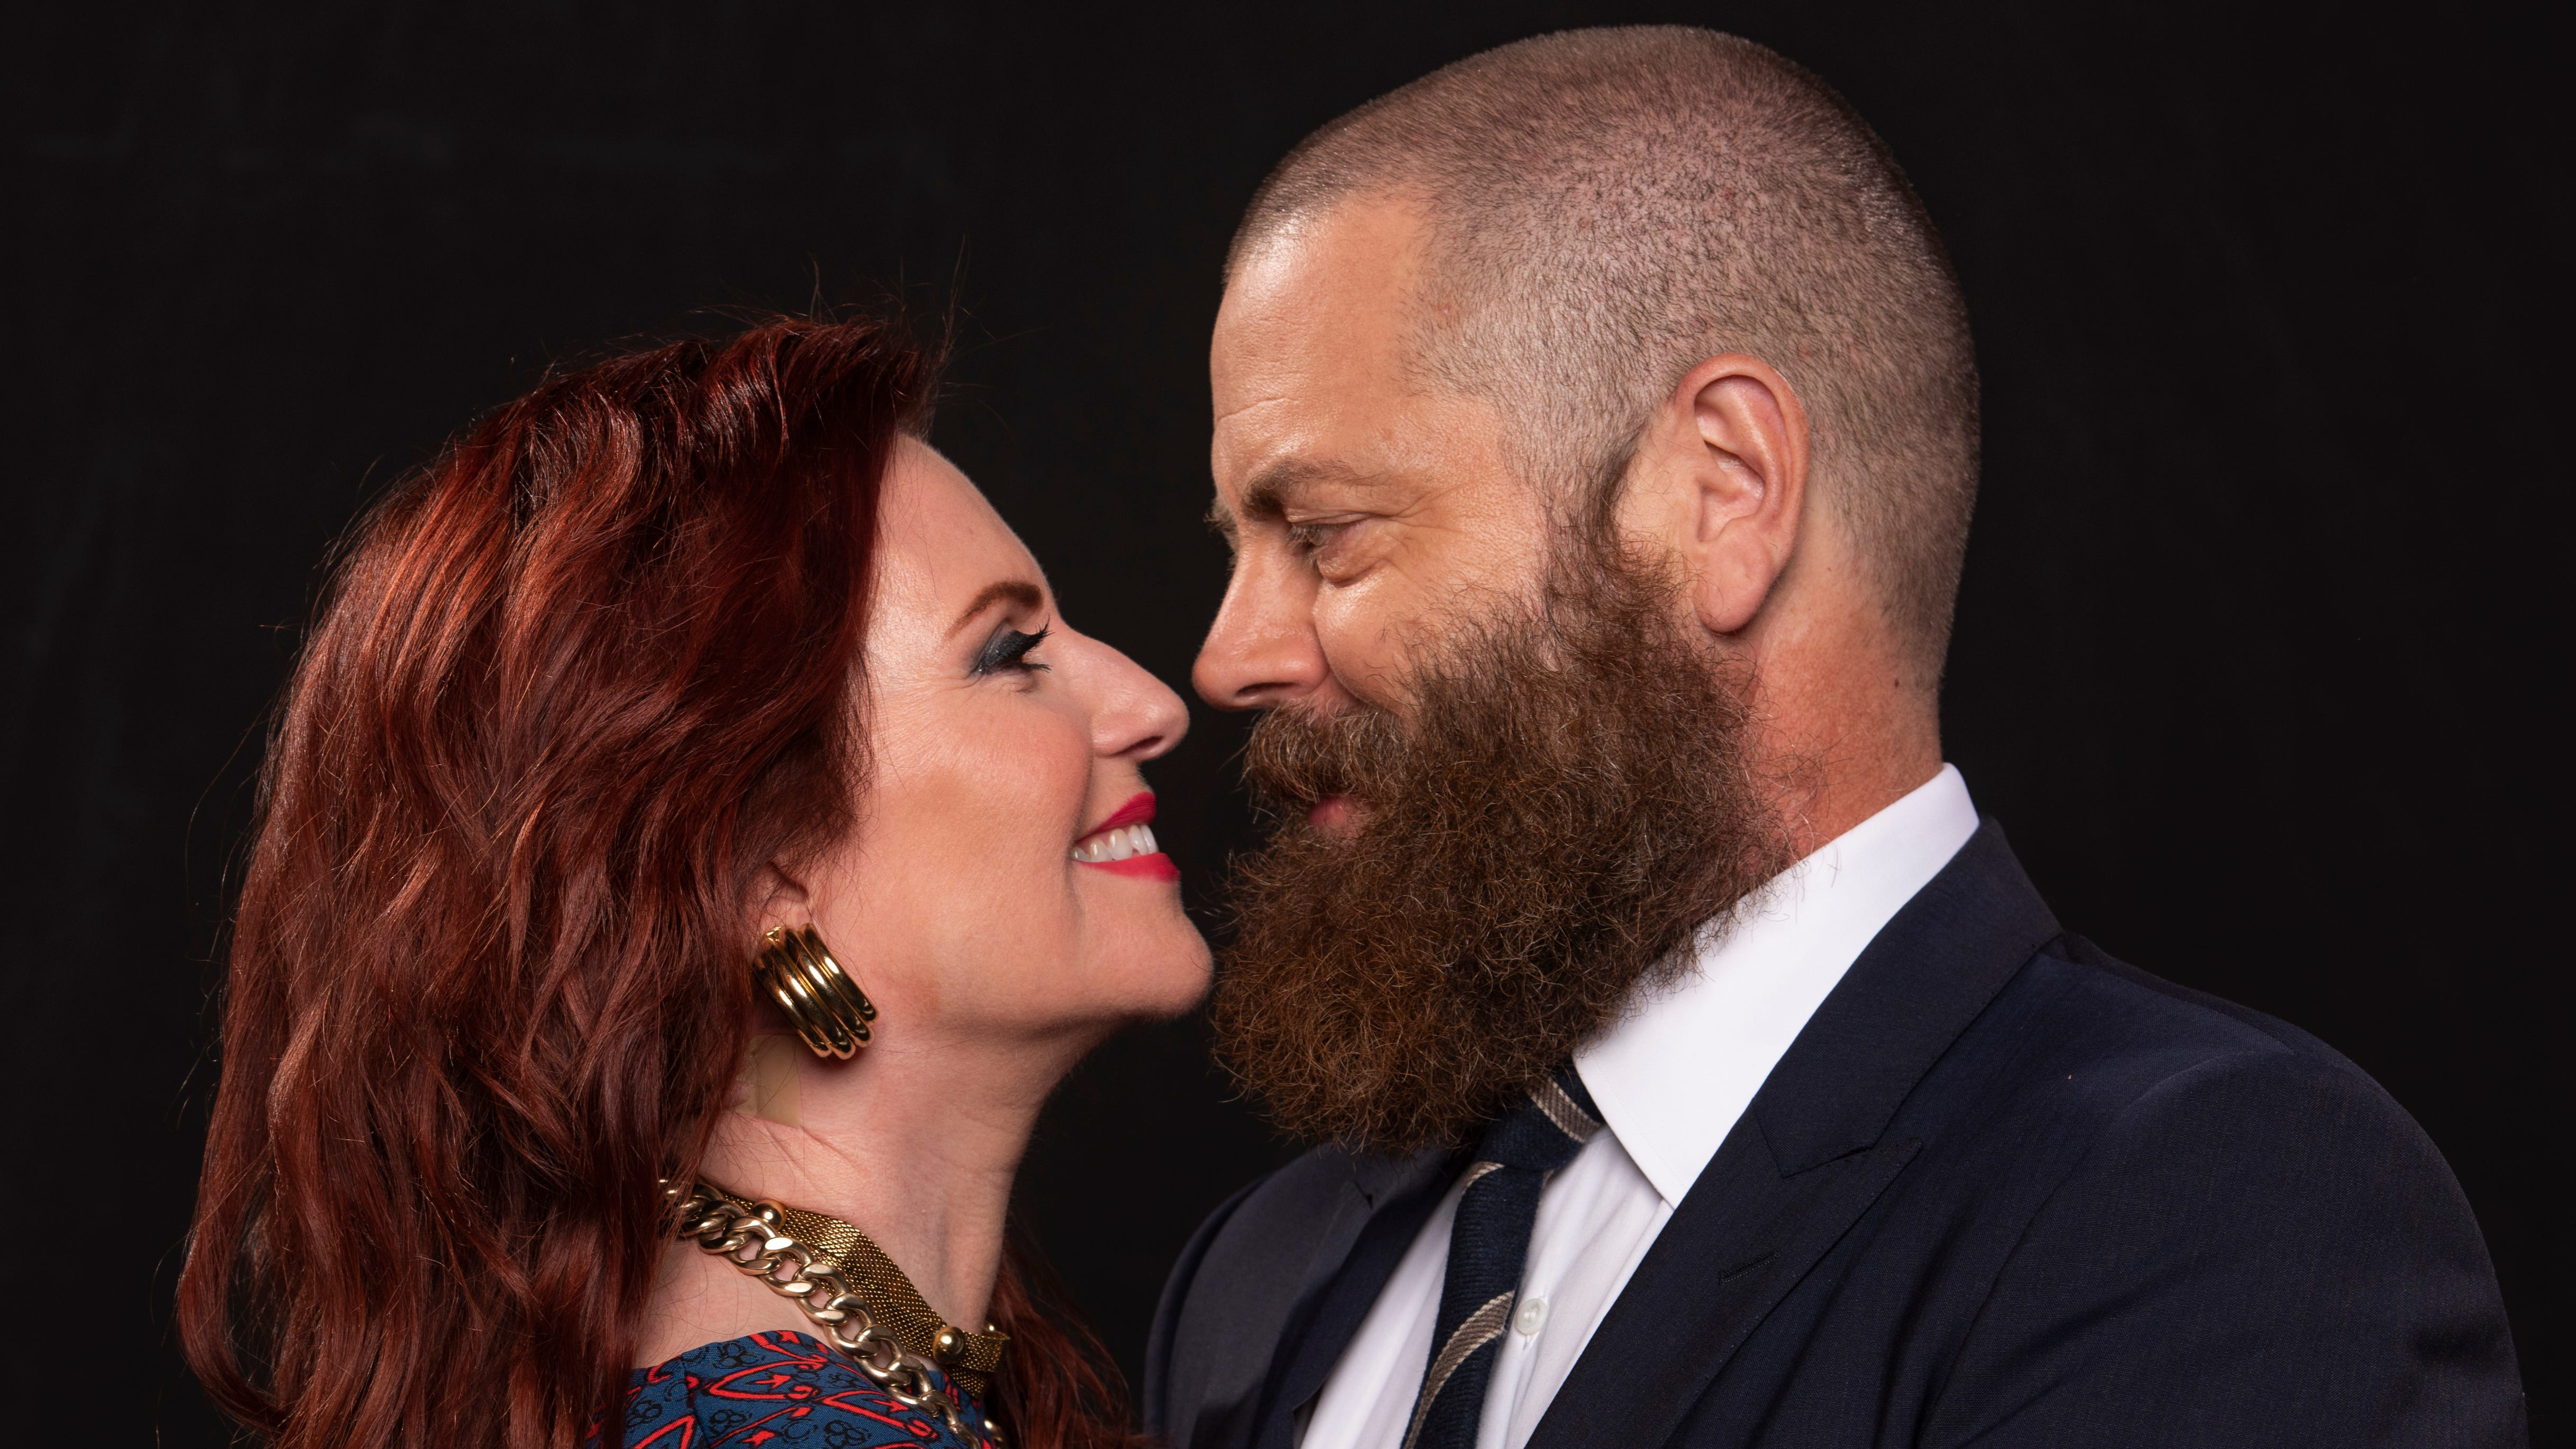 Actors Megan Mullally and Nick Offerman get close in New York on Oct. 1, 2018. The couple have written a funny book about their marriage and lives.